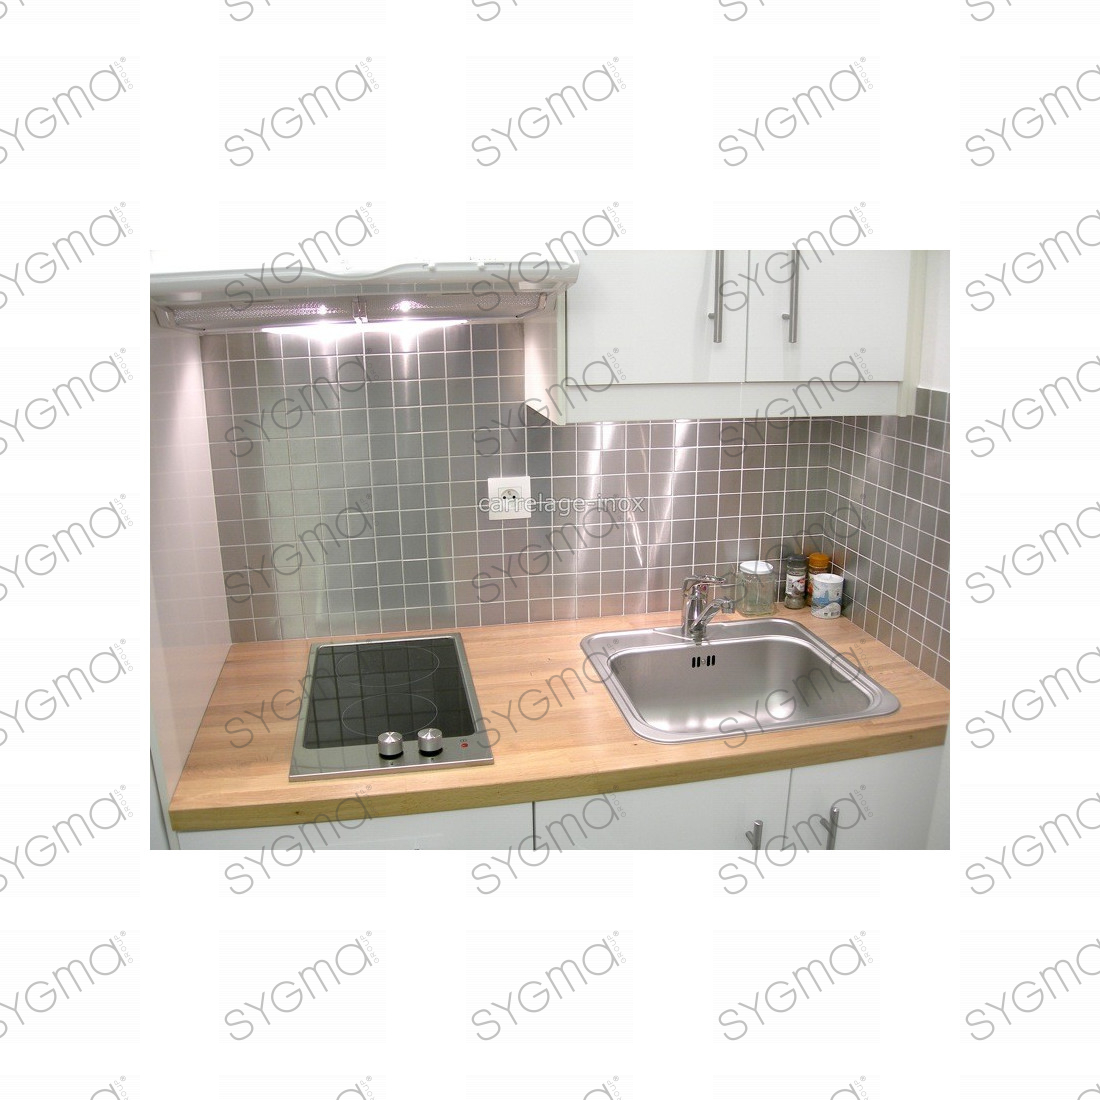 Mosaique inox modele regular 30 carrelage - Modele carrelage ...